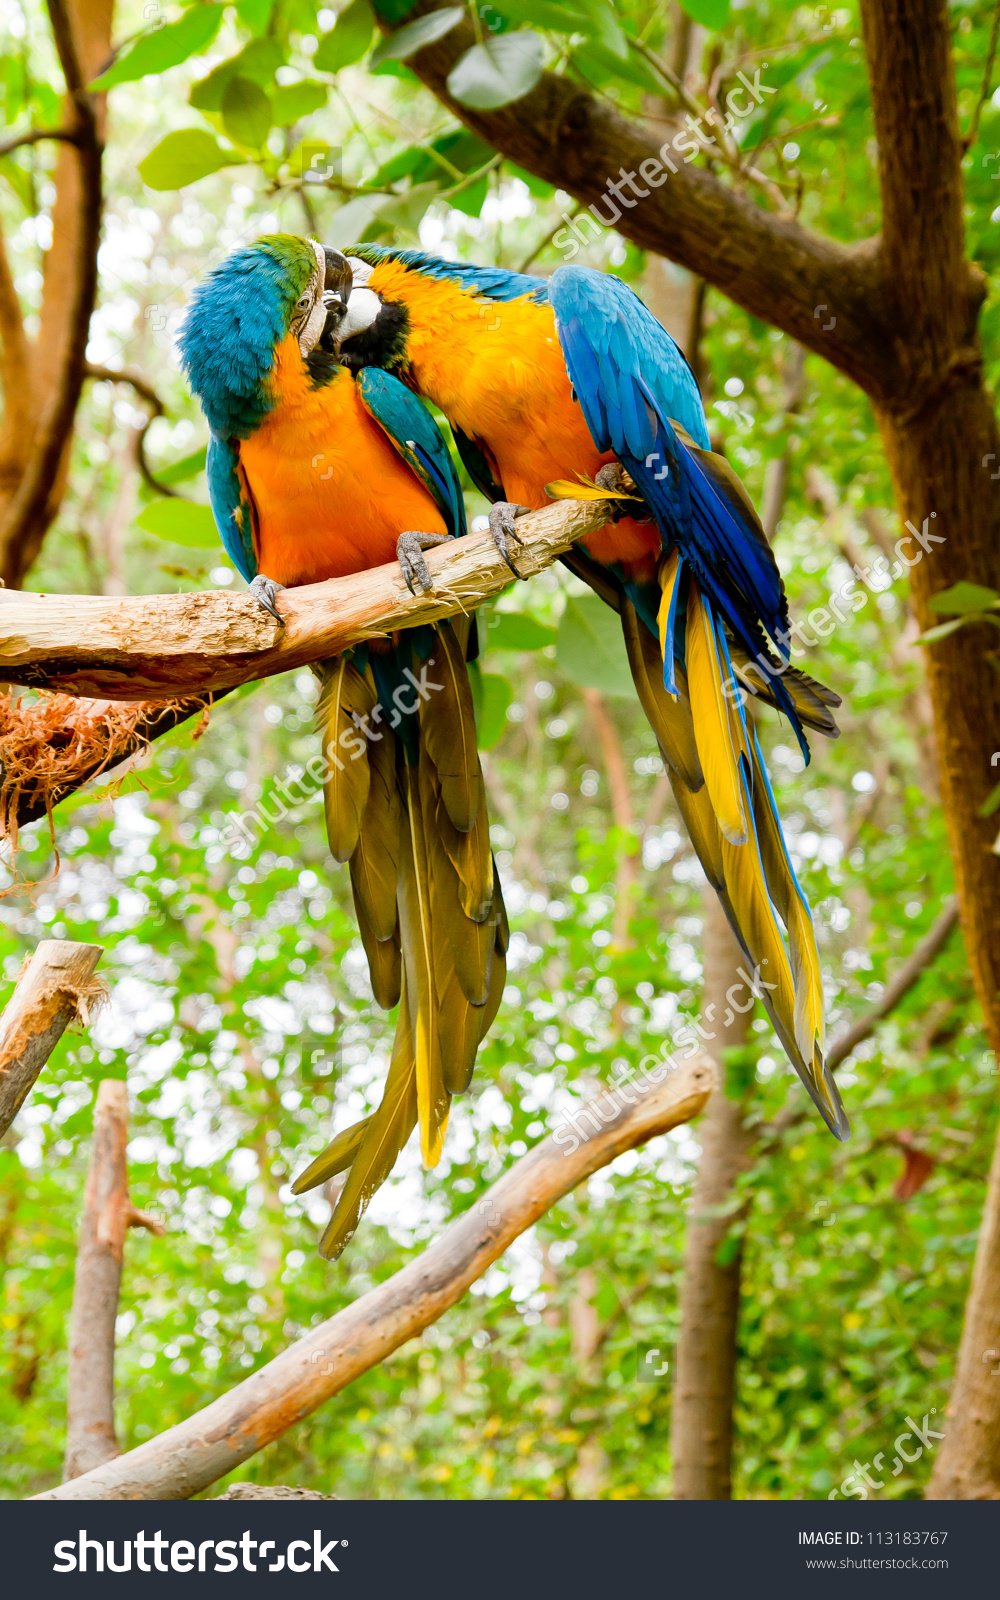 Colorful Couple Macaws Kissing Stock Photo 113183767 : Shutterstock.